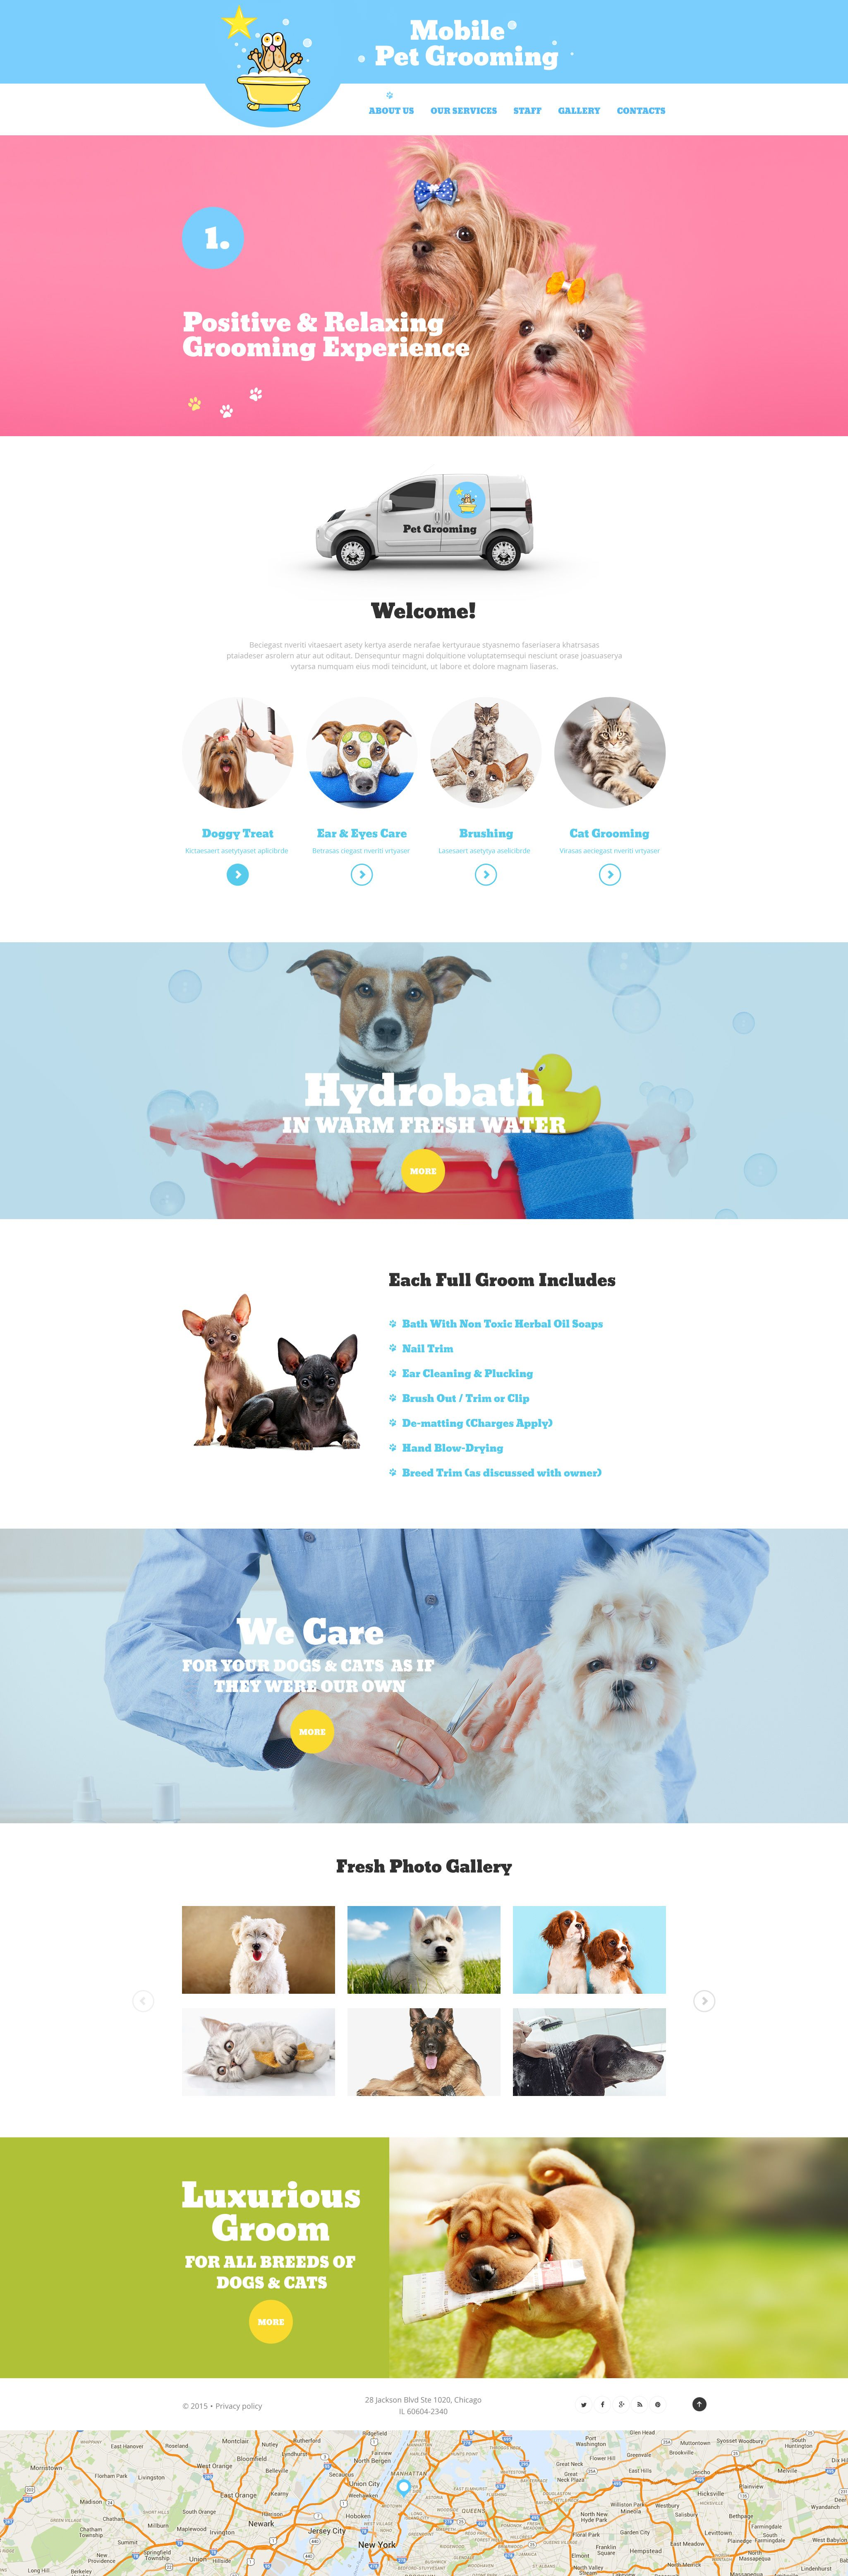 A Very Cute Pet Carer Website Template For A Pet Grooming Company Almost All Dog Breeds Need Grooming From Time To Time To Be Healthy Look And Smell Goo Layout